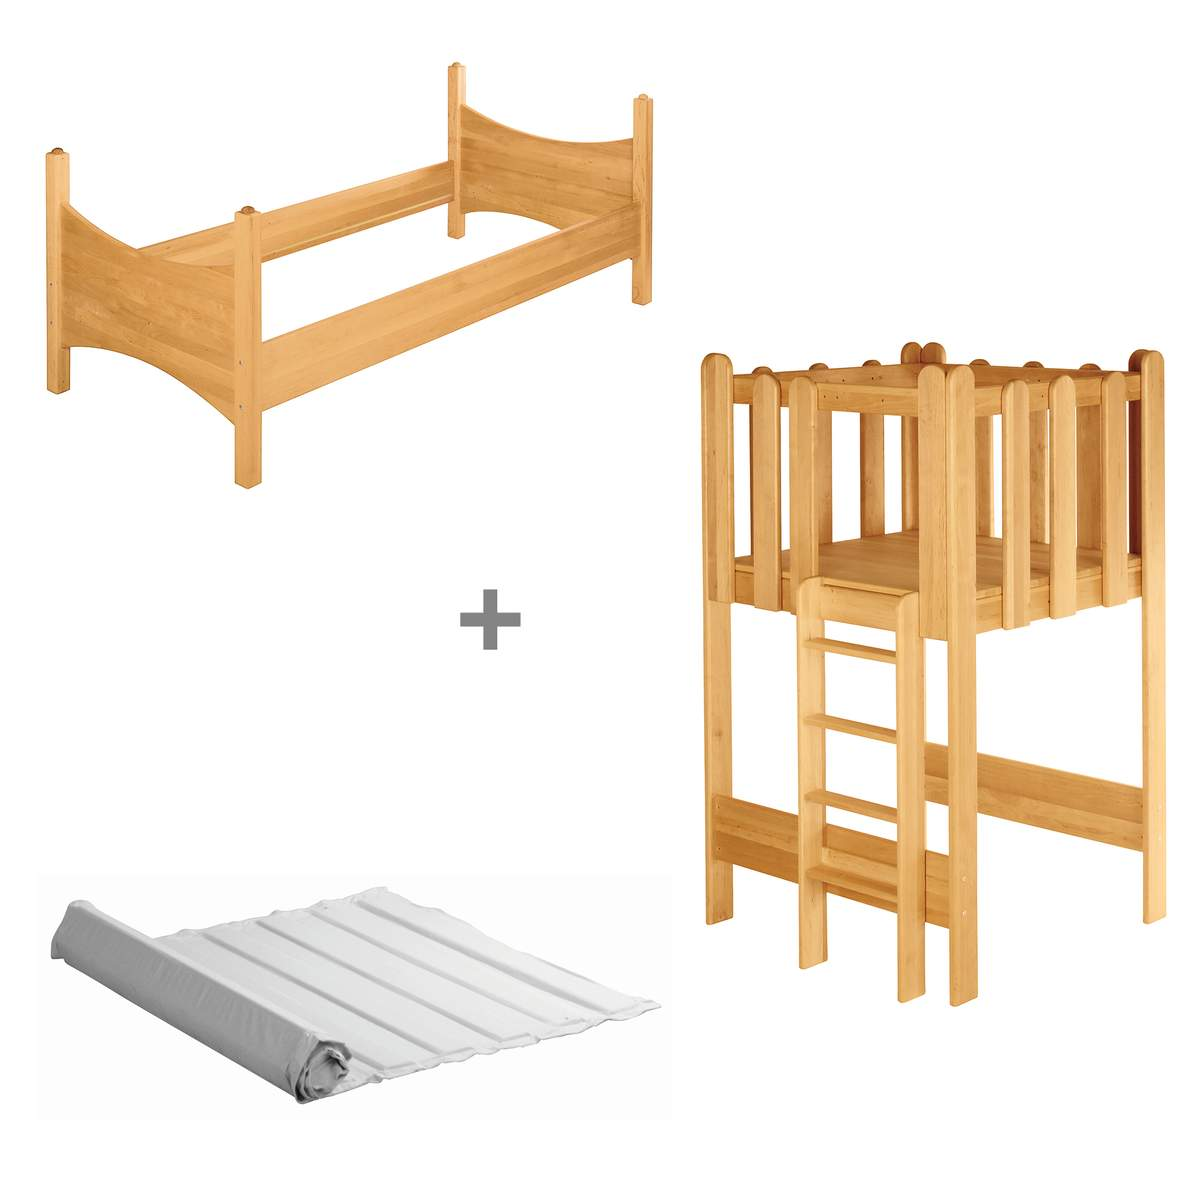 biokinder komplett set noah kinderbett mit spielturm erle. Black Bedroom Furniture Sets. Home Design Ideas